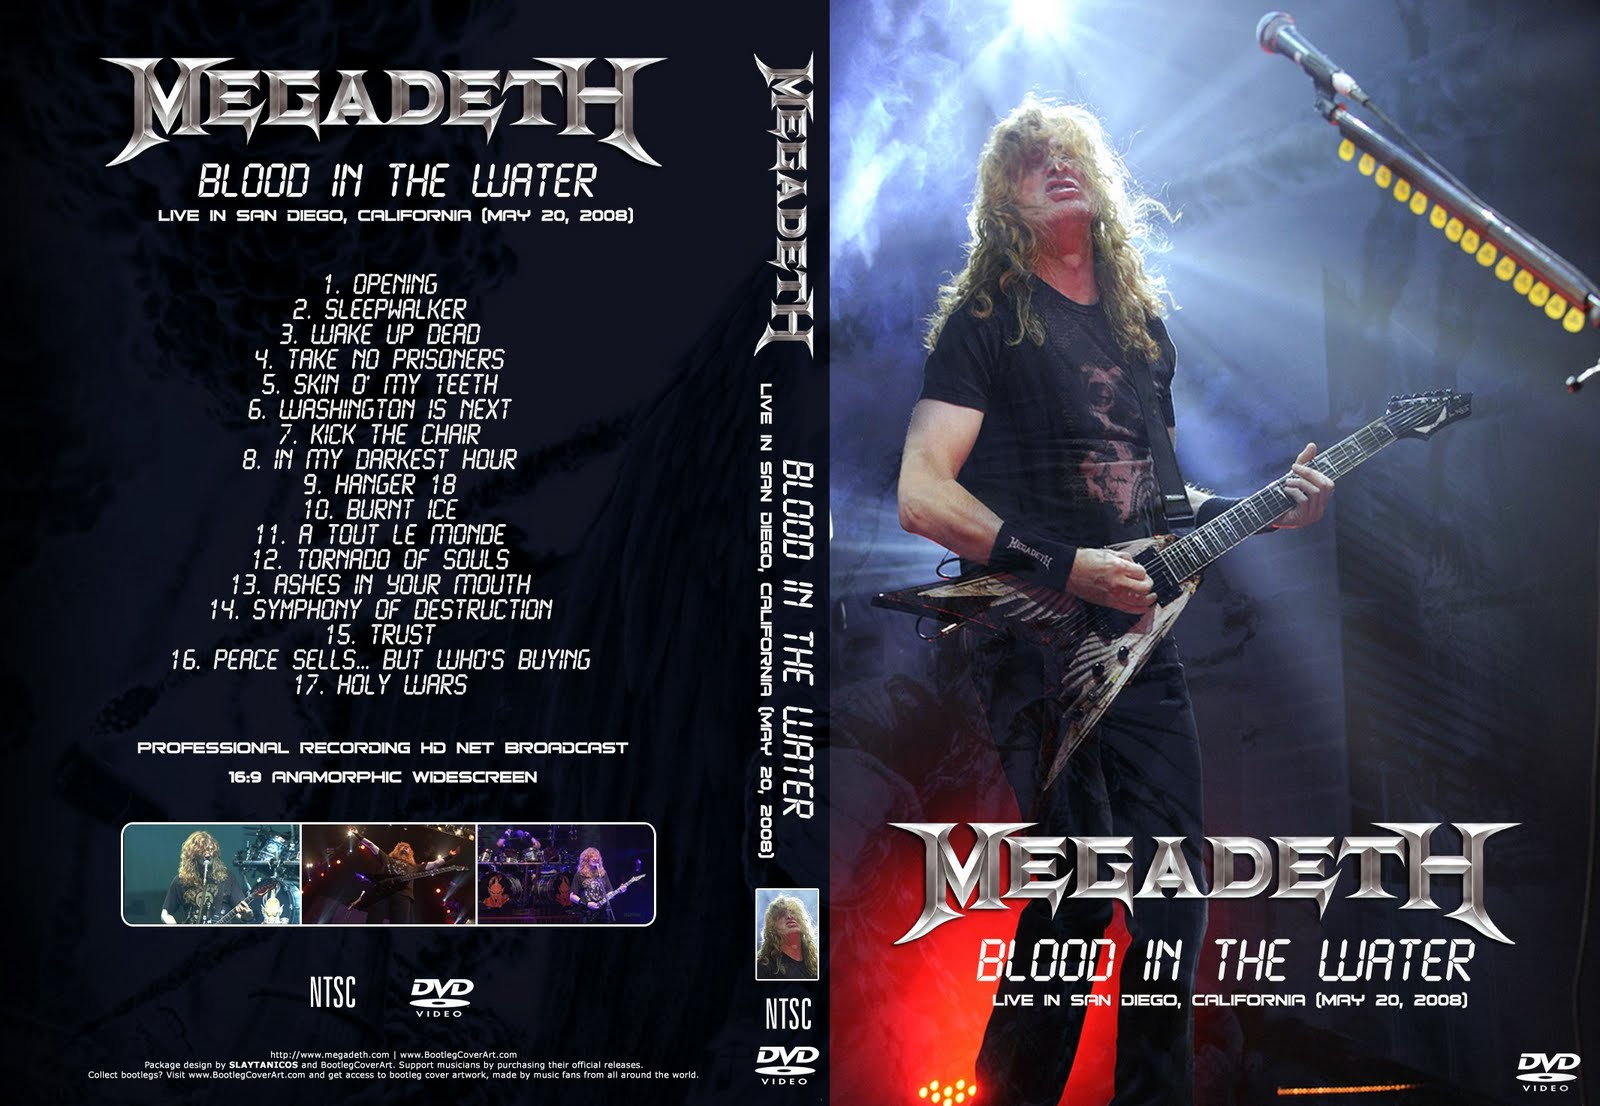 Megadeth Blood In The Water Live In San Diego 2008